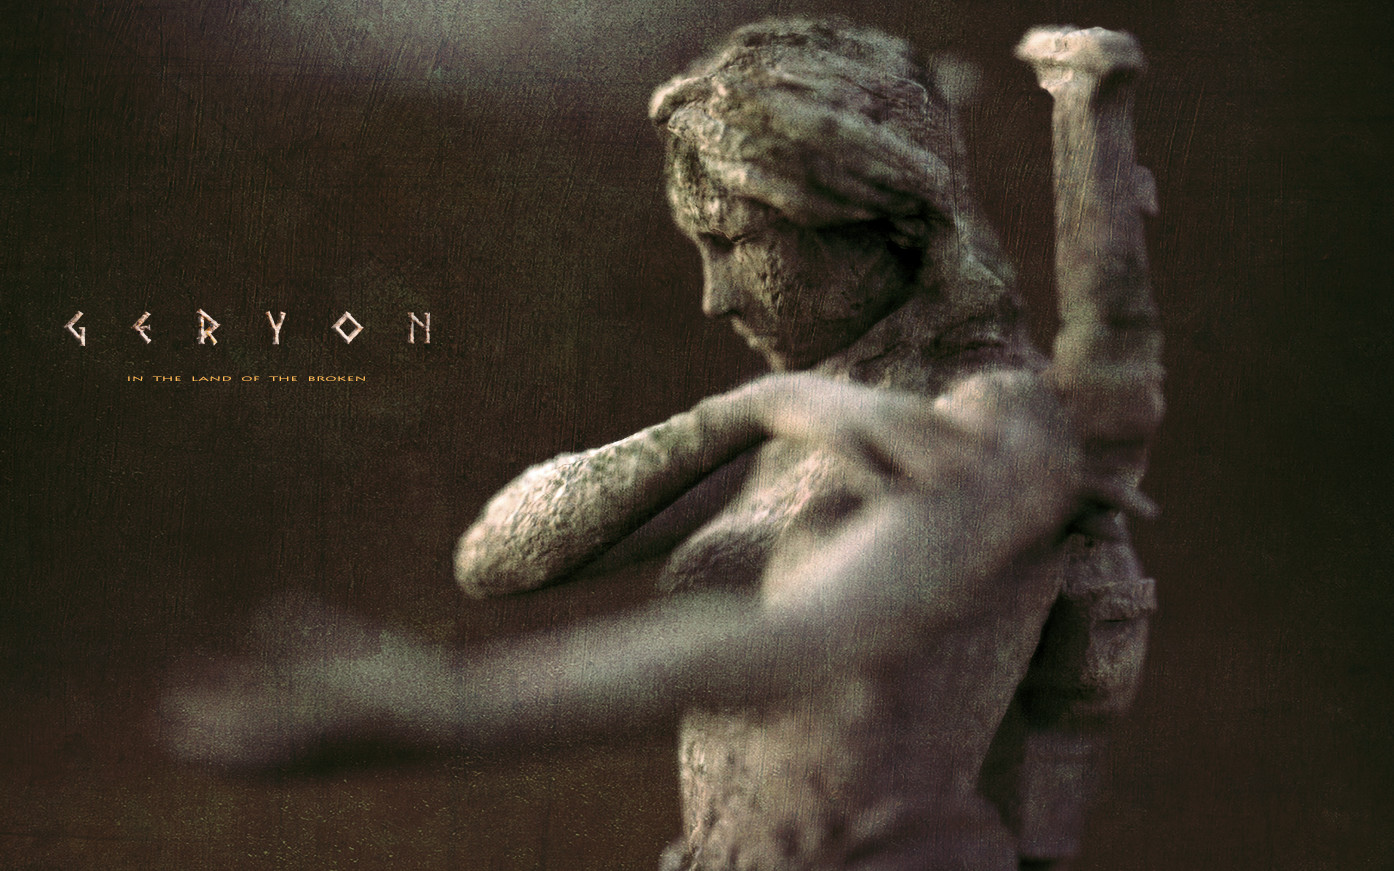 Geryon PC game/ Game assets and wallapaper